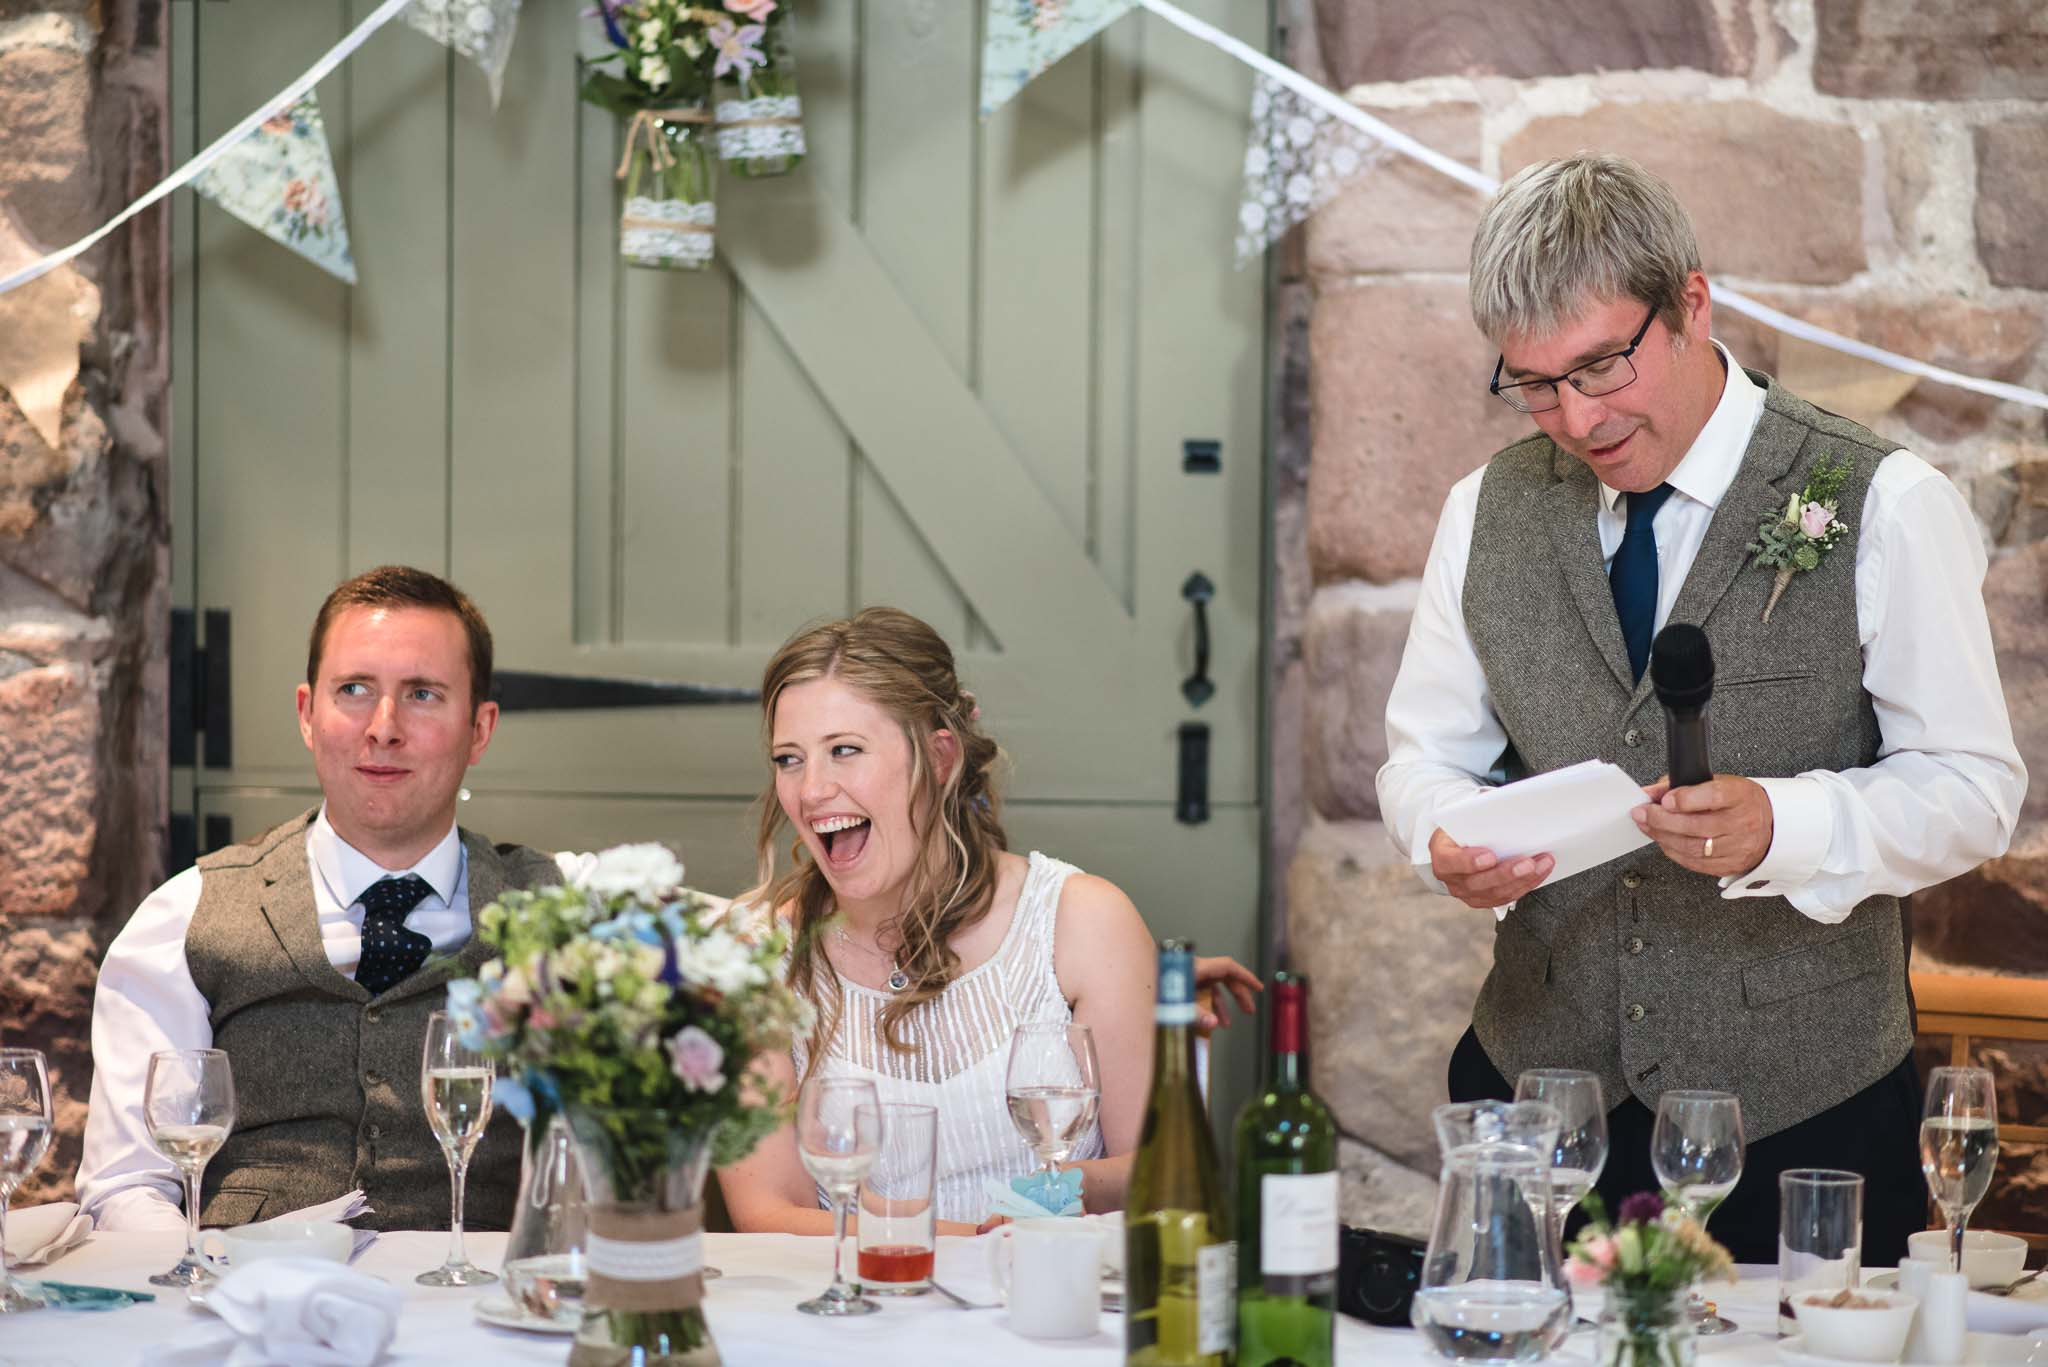 The_Ashes_Barns_Country_House_Wedding_Emma_Hare_Photography_Bev_Nathan-49.jpg